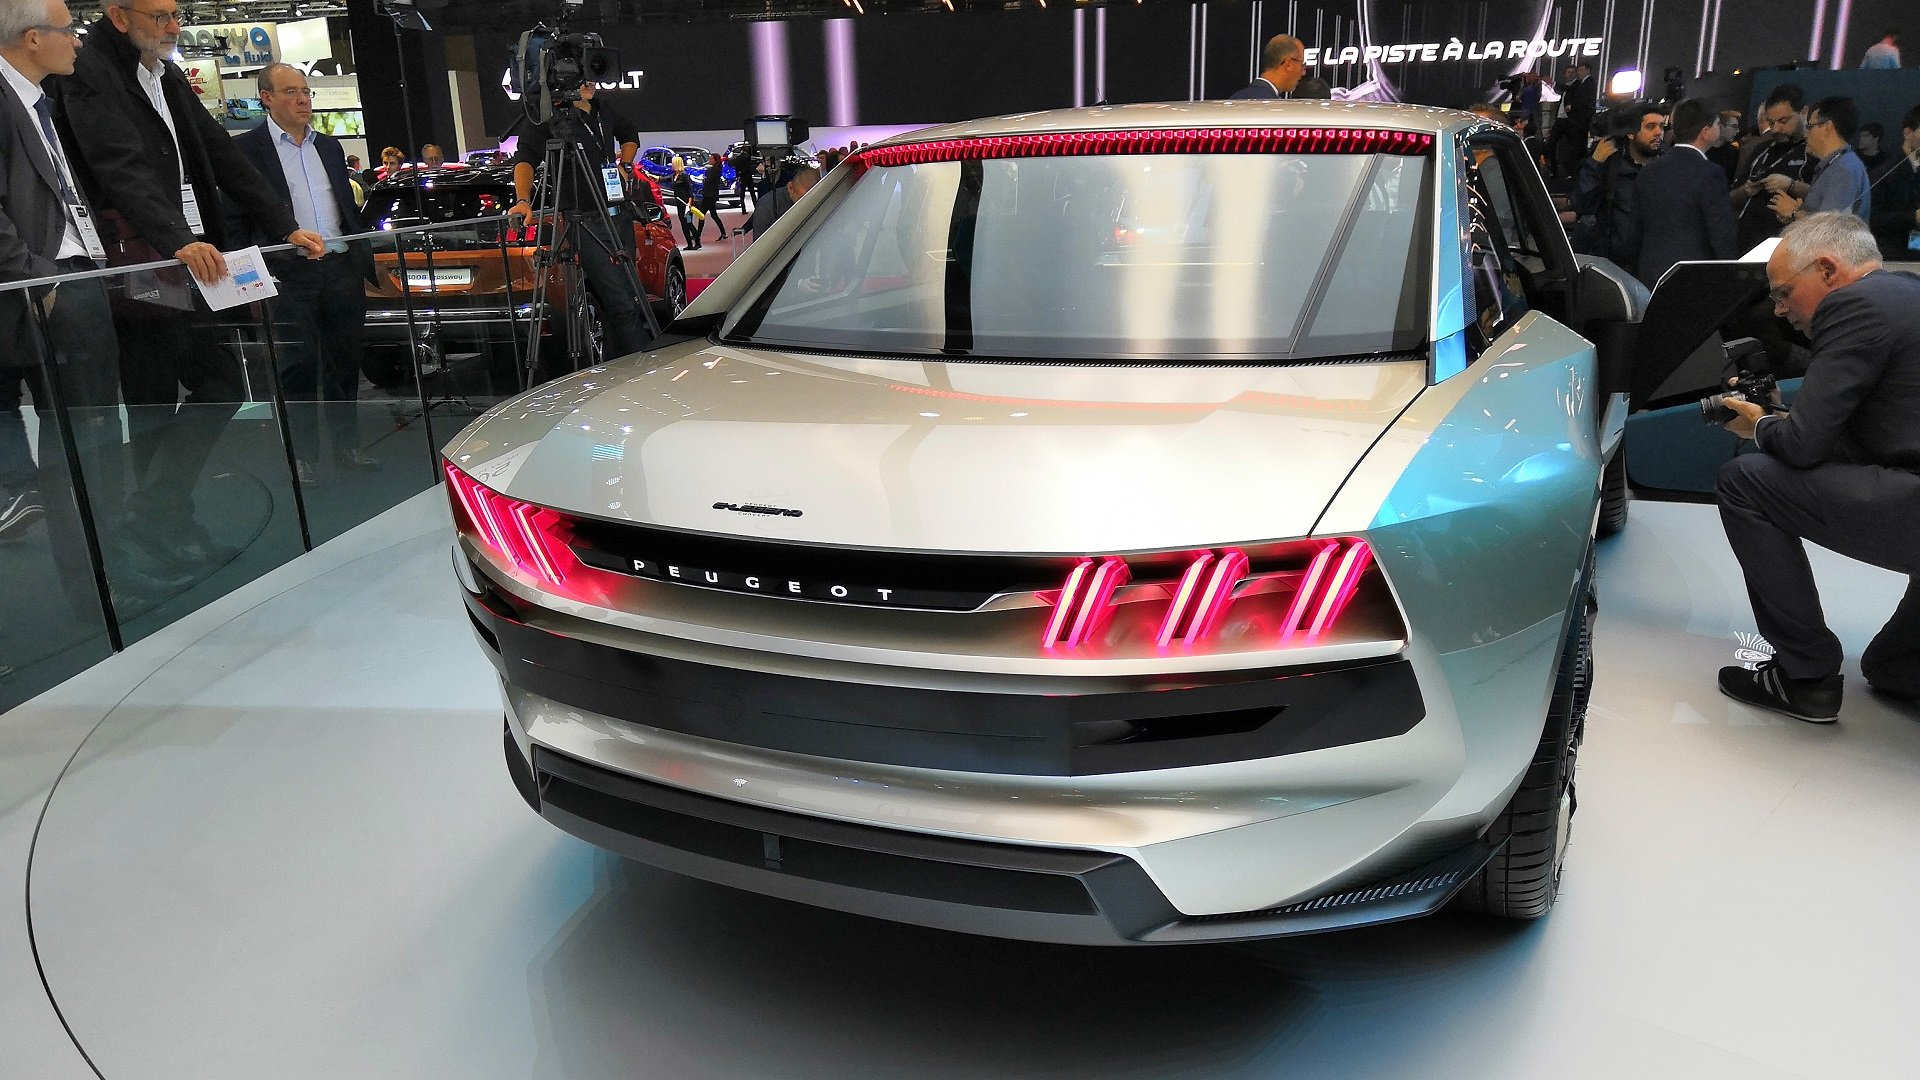 Peugeot E Legend This Flashy Coupe Could Be The Future Of Mobility